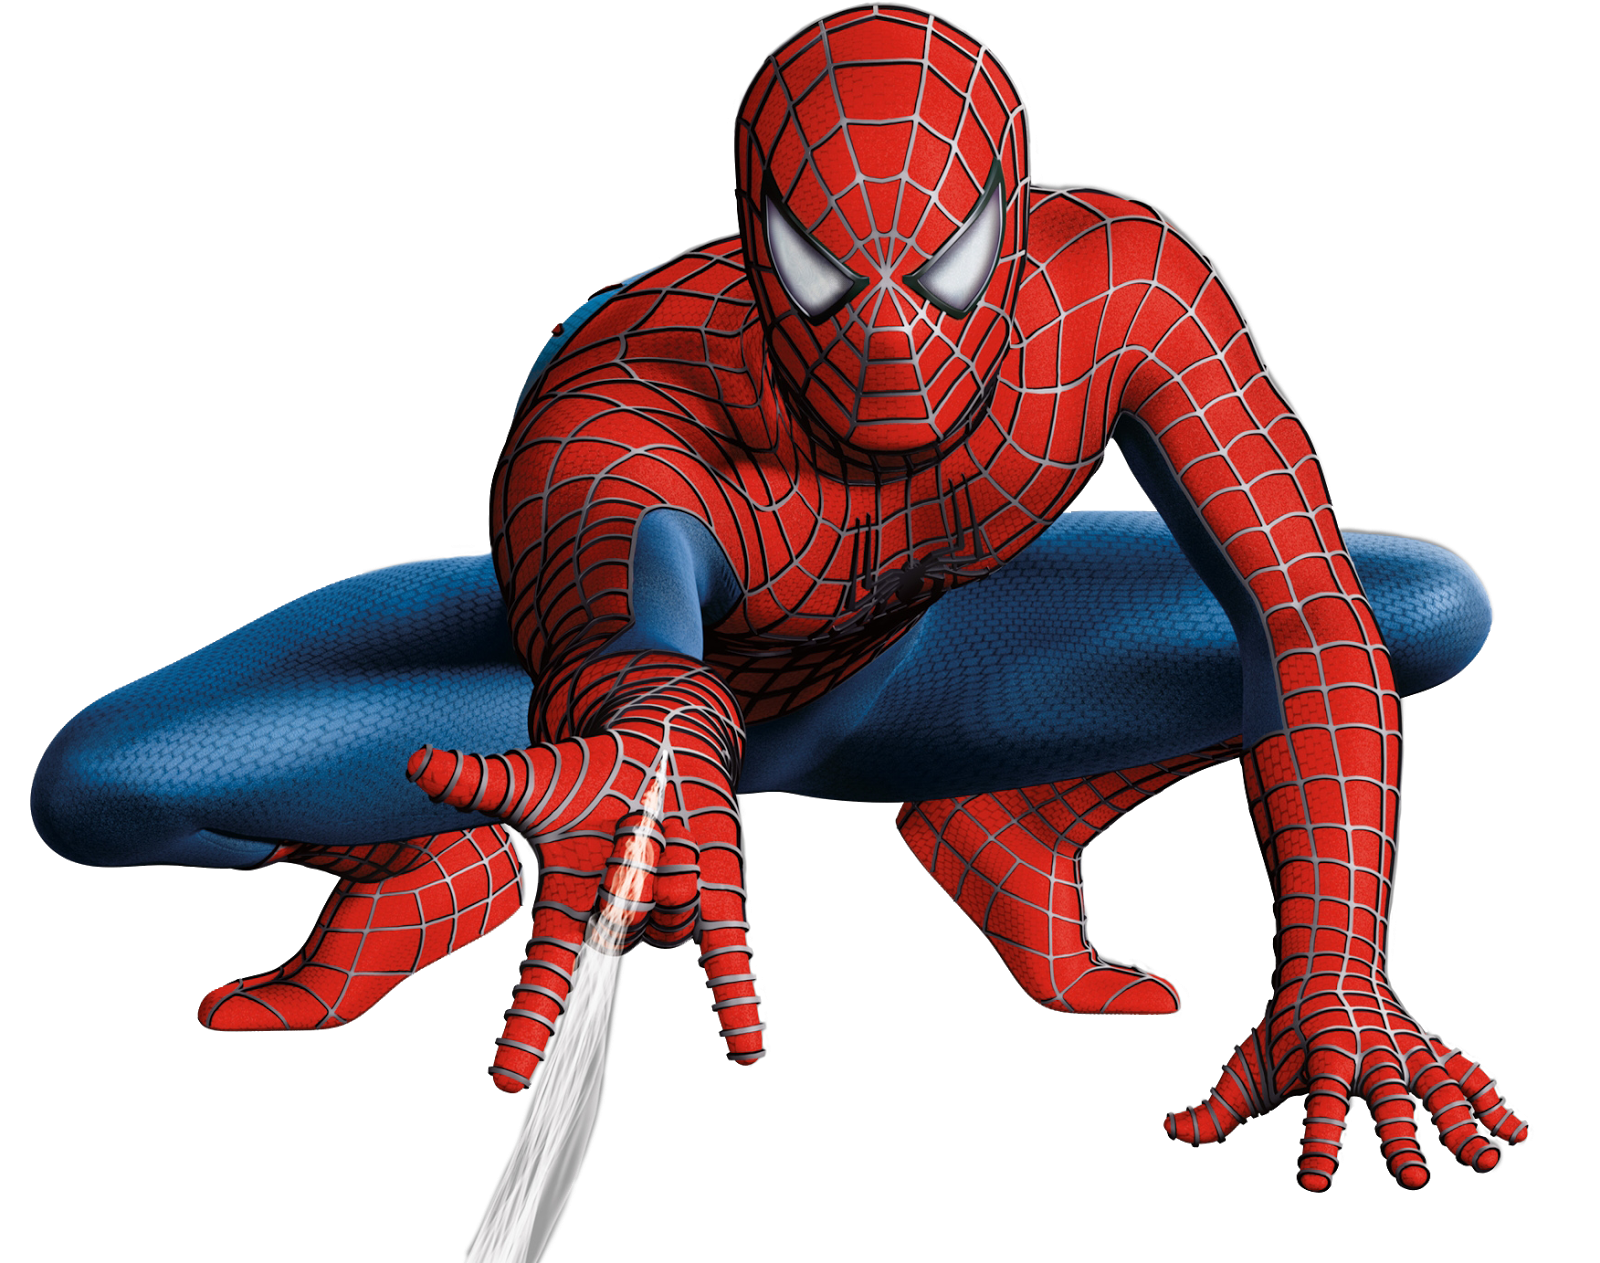 Pin by charudeal on games in 2019 spiderman spiderman